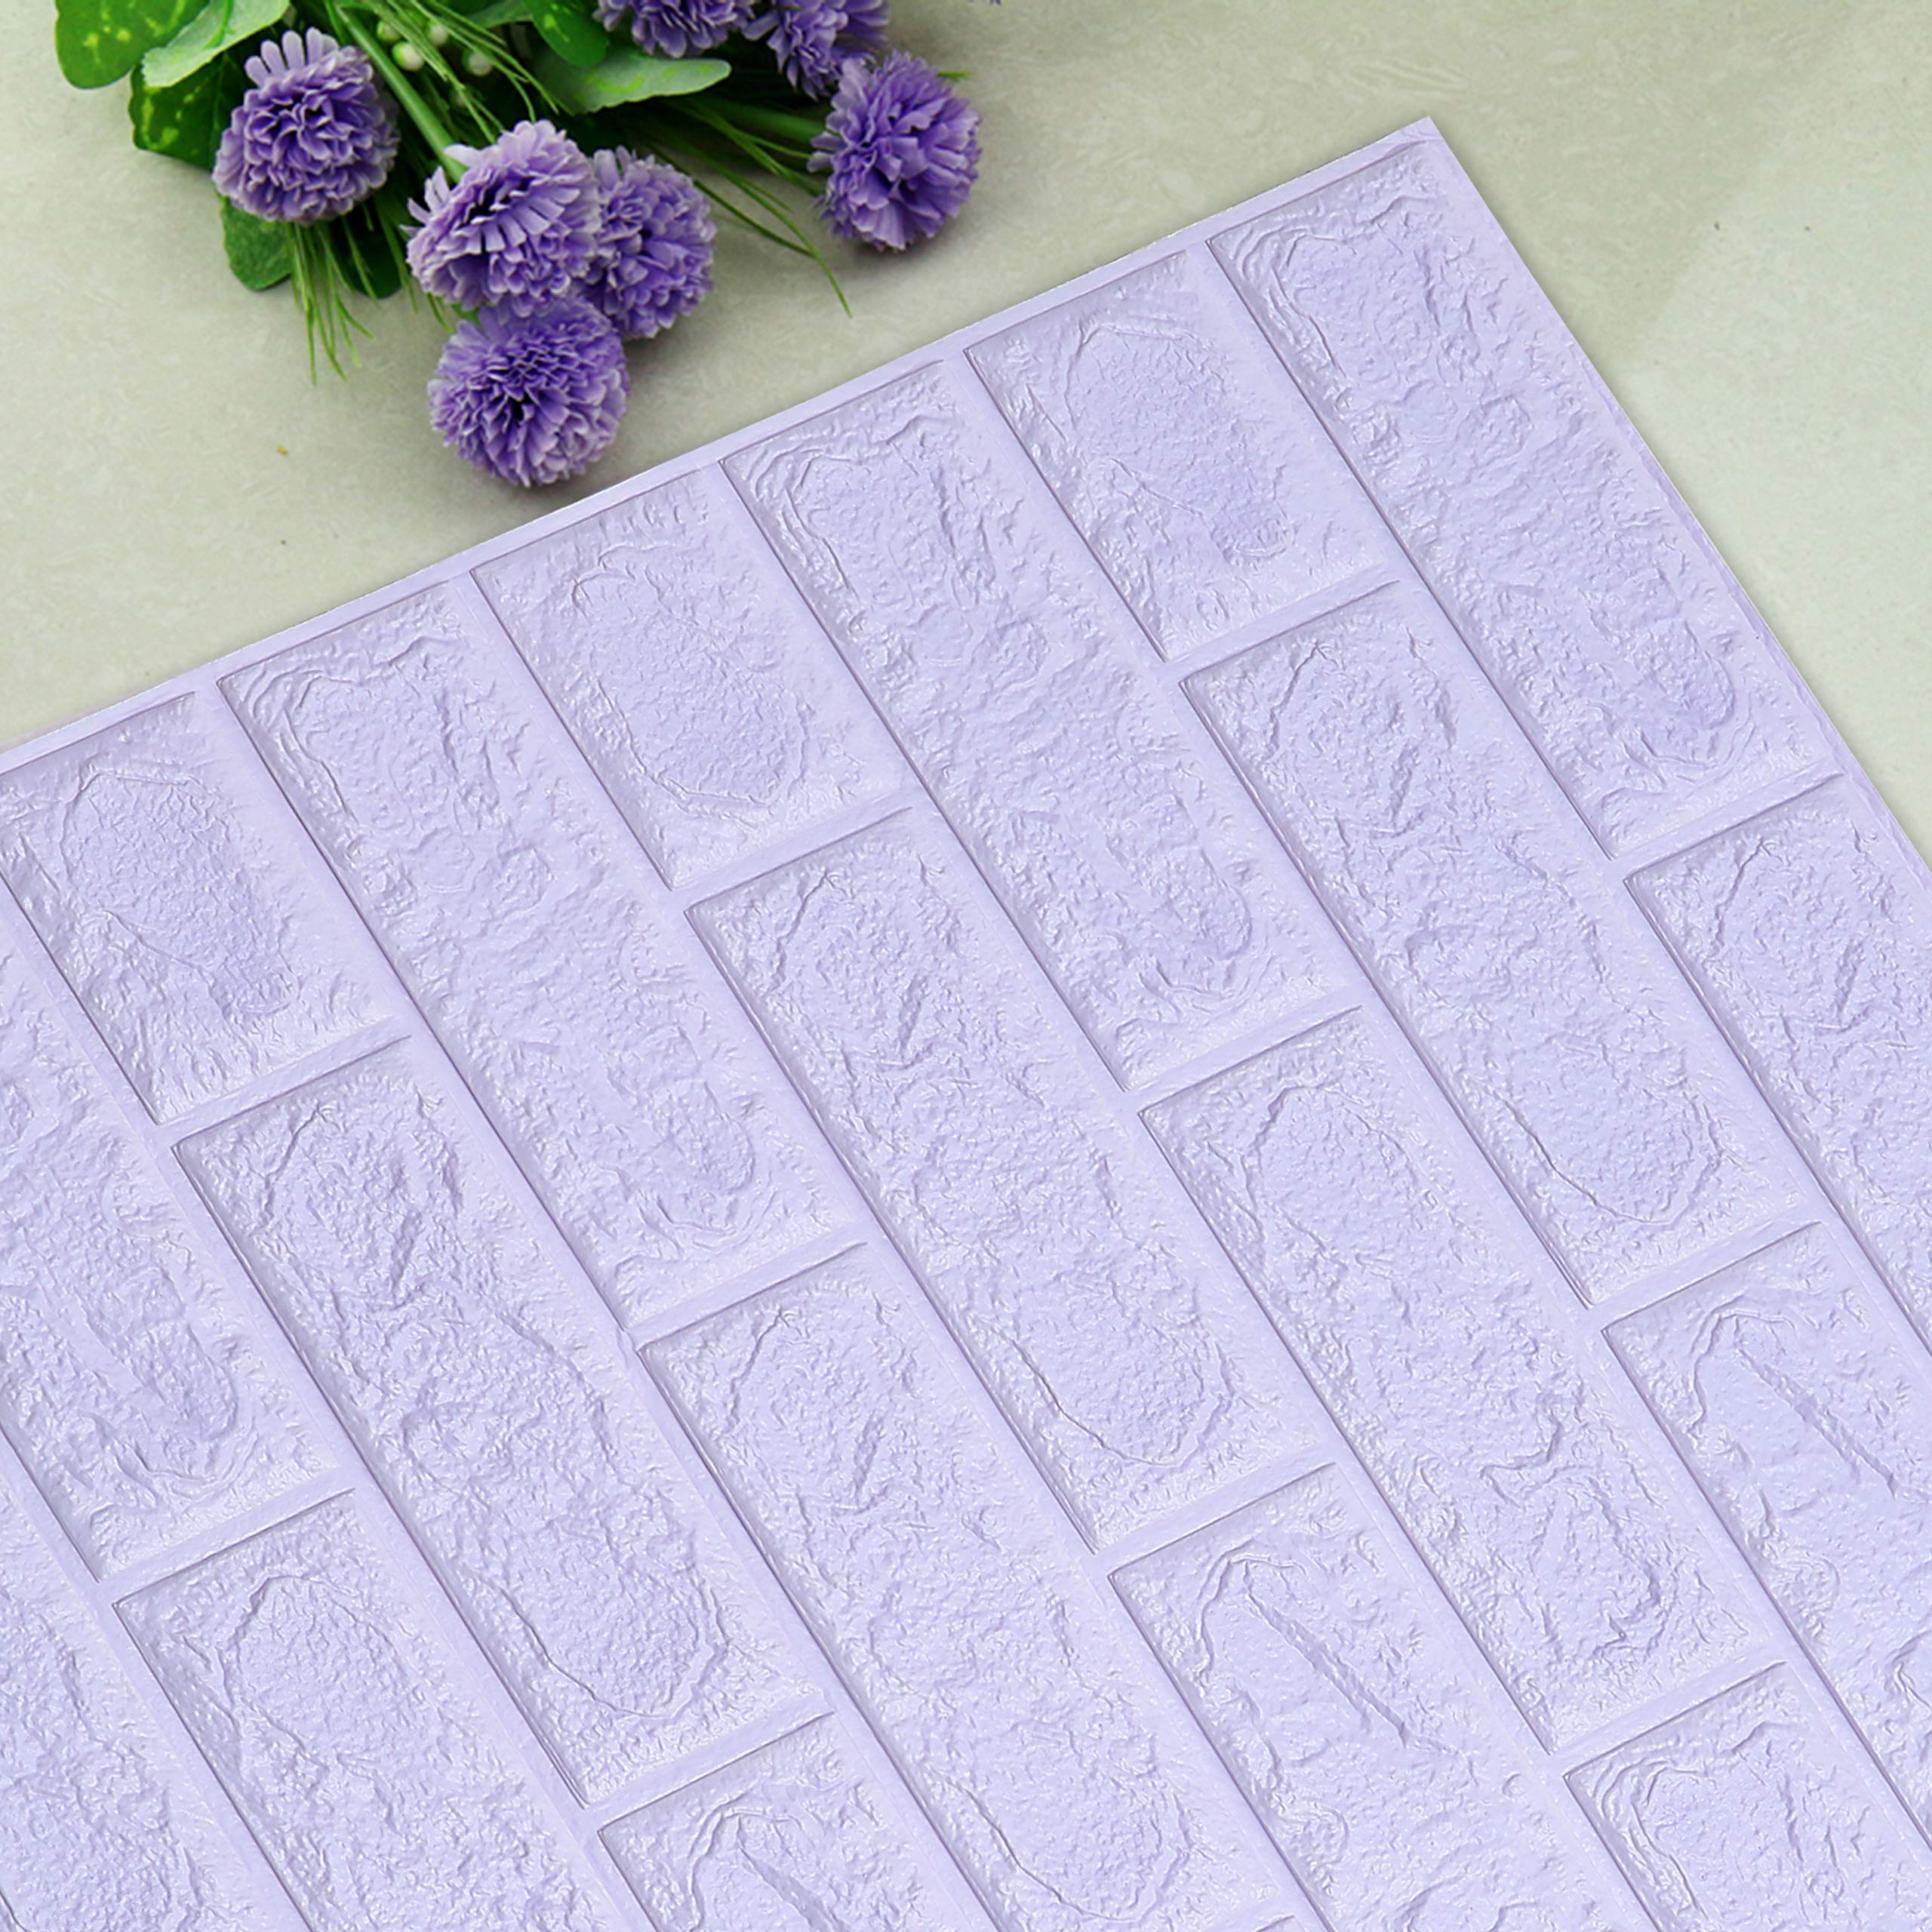 UNICOO - 3D Wall Panels Peel and Stick Self-Adhesive Real Bricks Effect Wall Tiles for Kids Room Bathroom Living Room TV Walls Sofa Background Wall Decoration. 116sq ft 20 Packs (Purple)